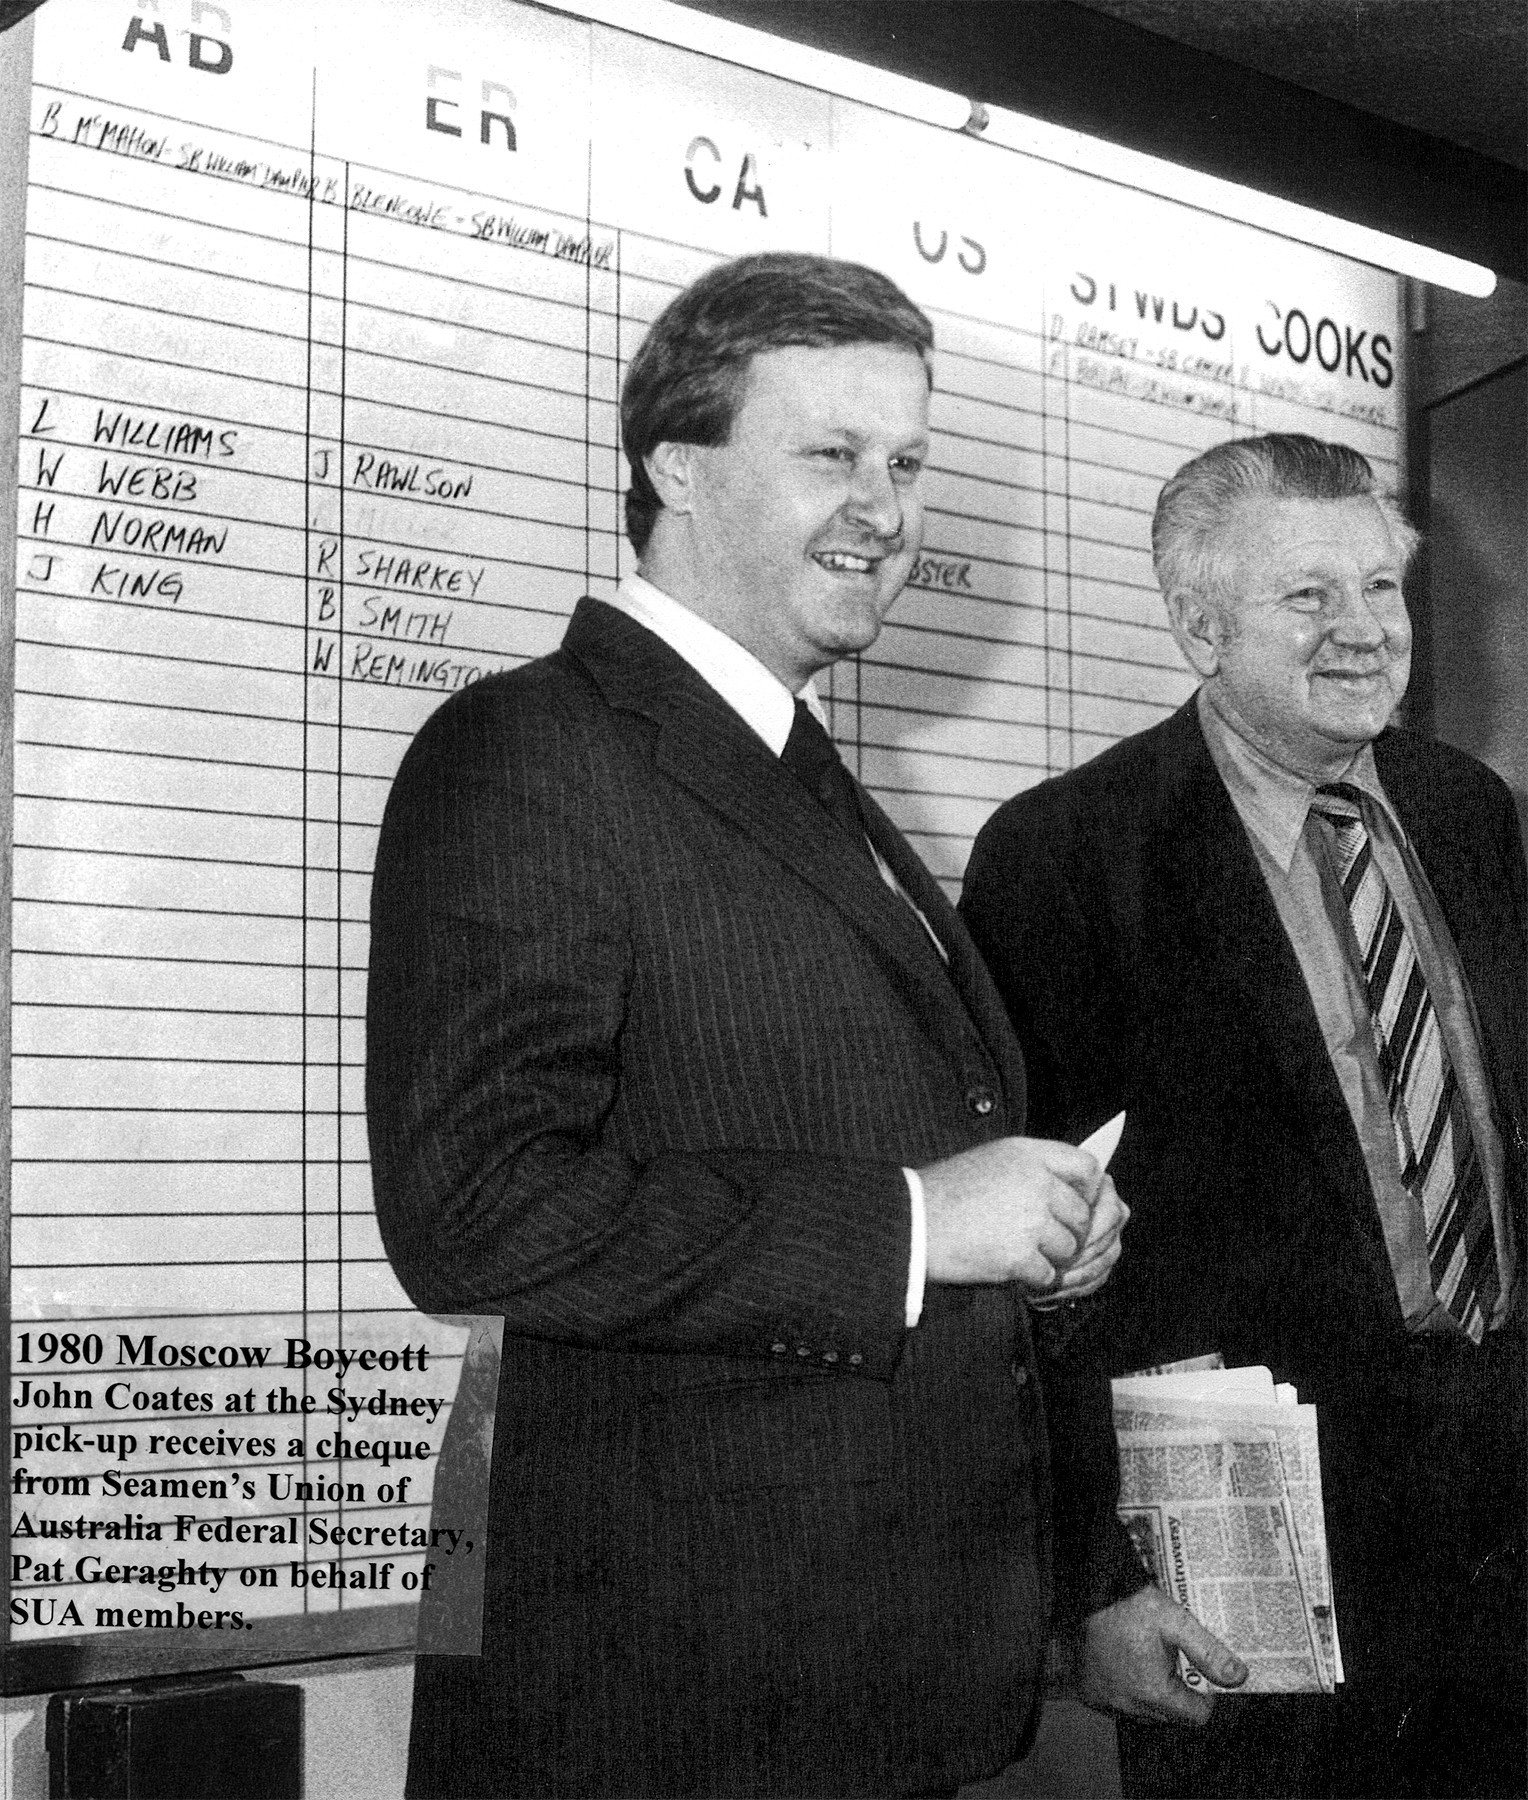 John Coates, left, led the campaign to ignore calls from the Australian Government to boycott the 1980 Olympic Games in Moscow following the Soviet Union invasion of Afghanistan ©Getty Images